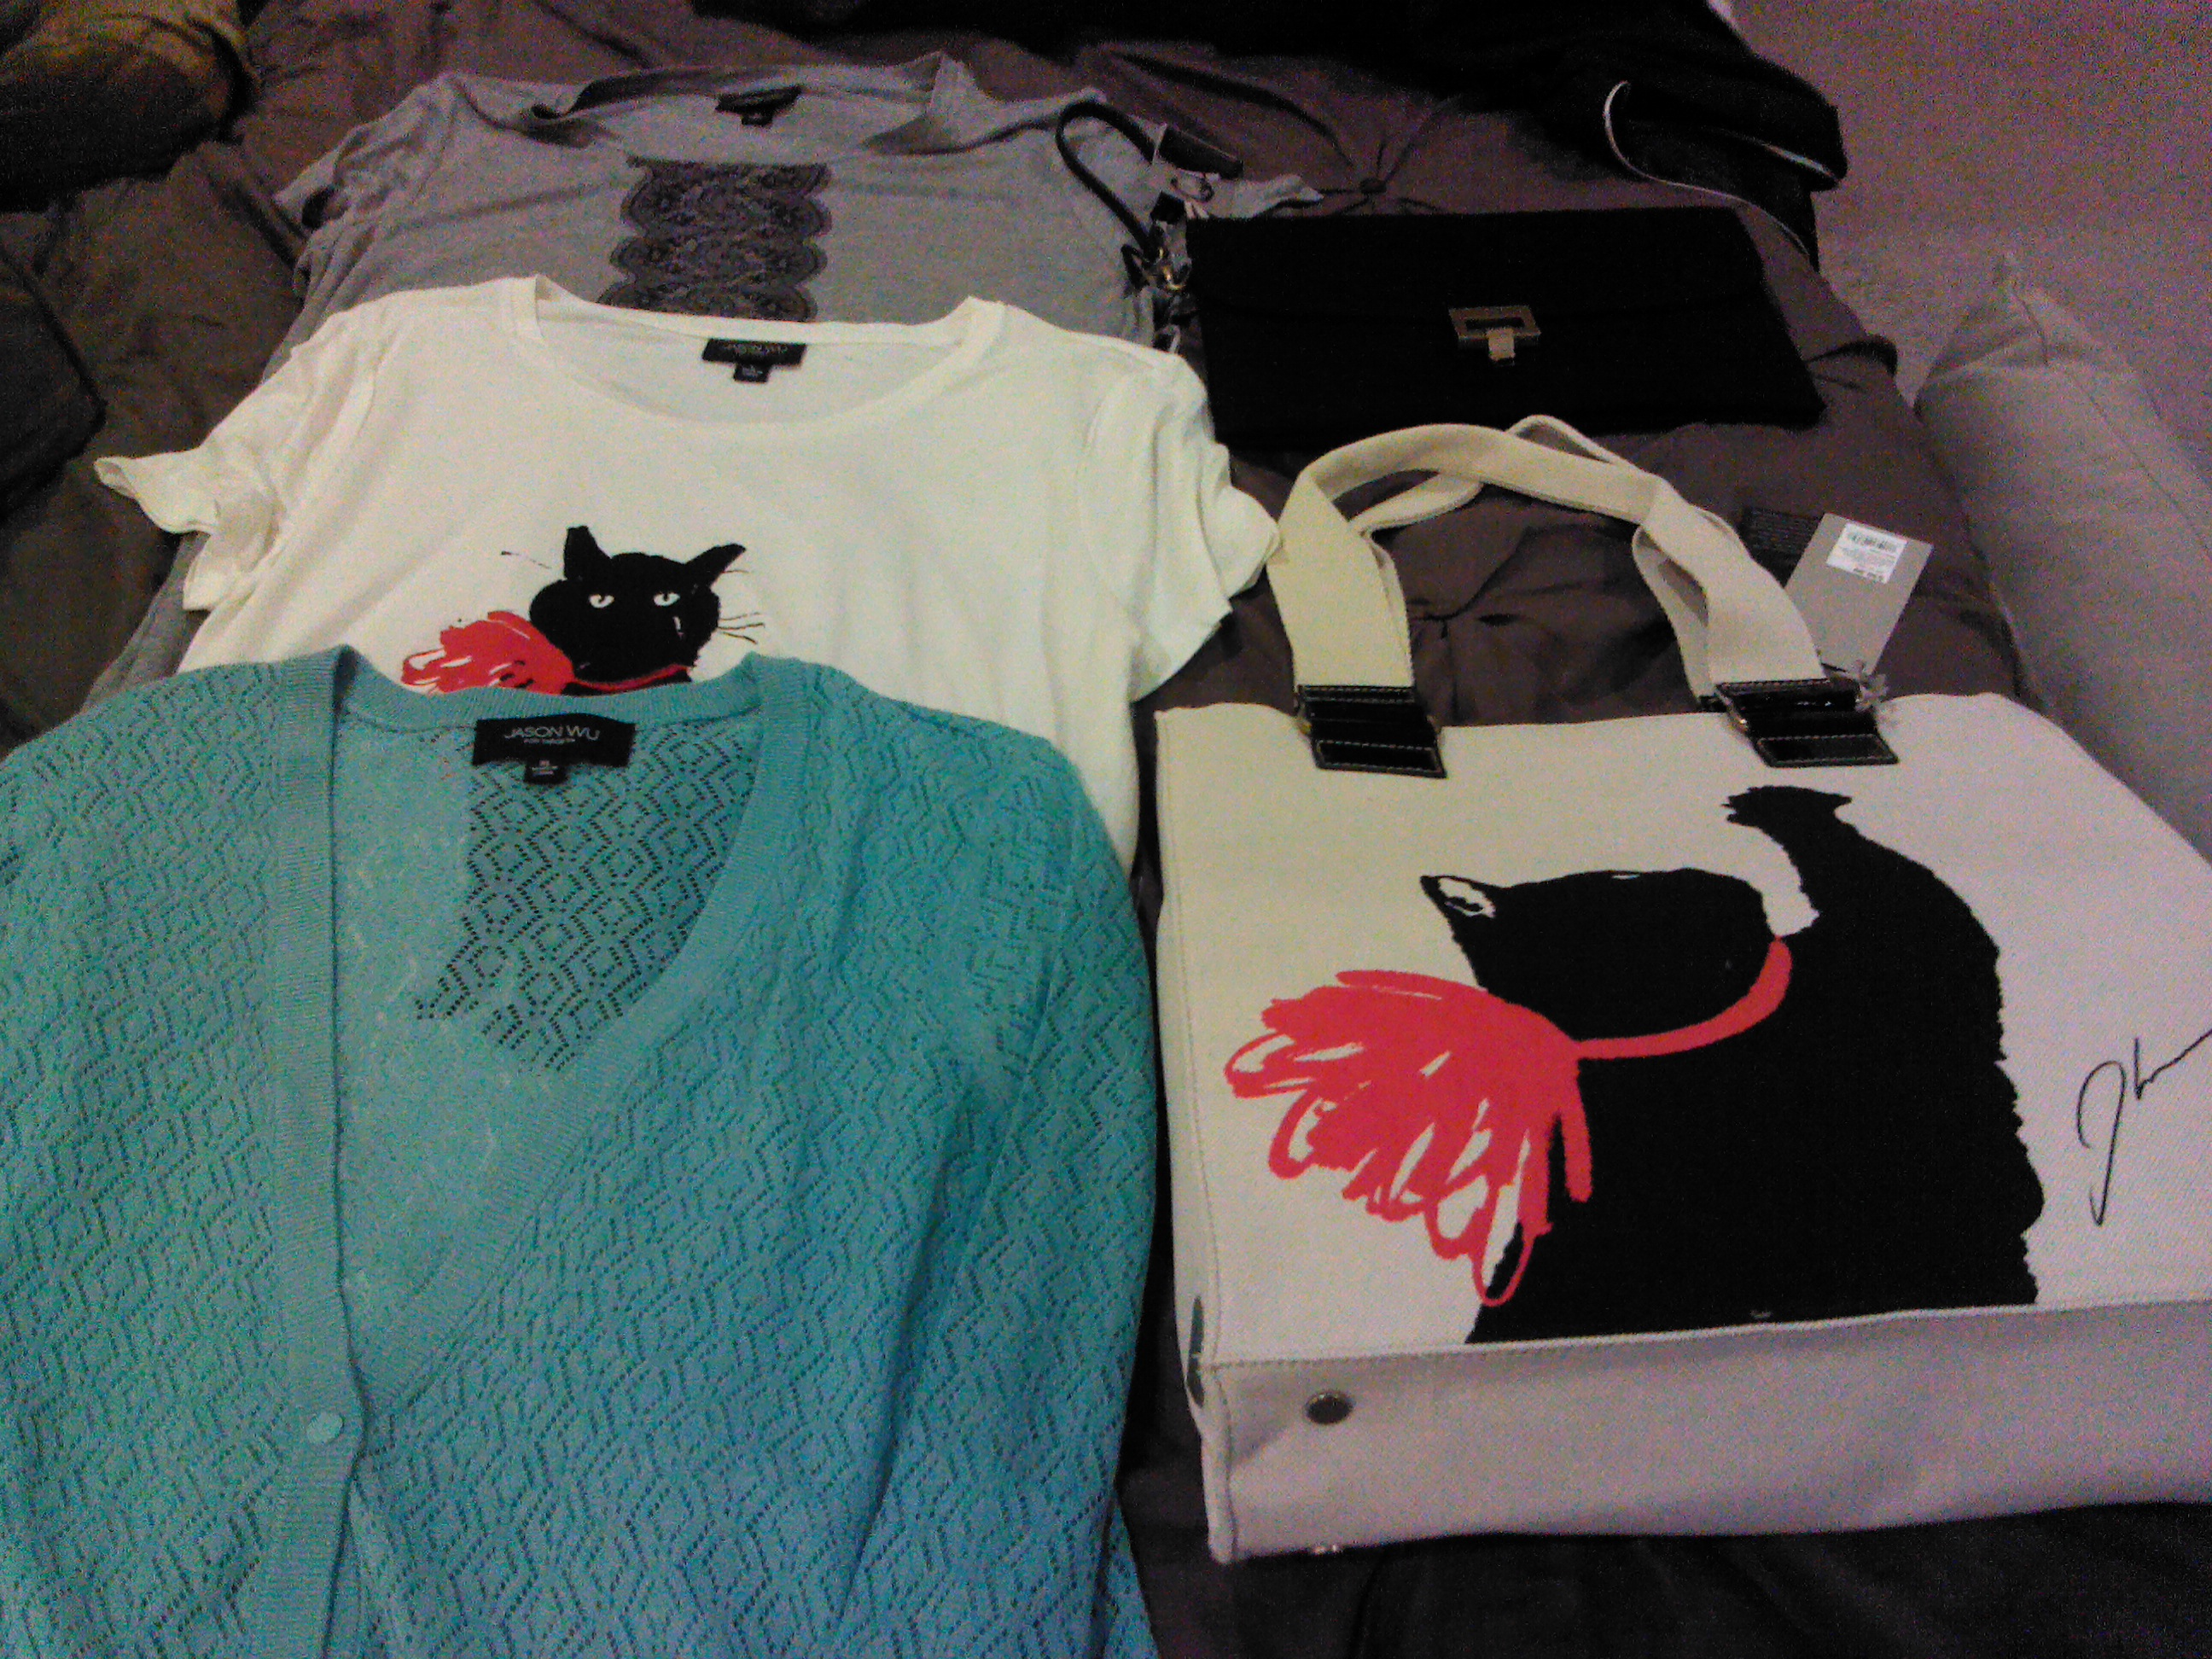 My purchases from the Jason Wu for Target line